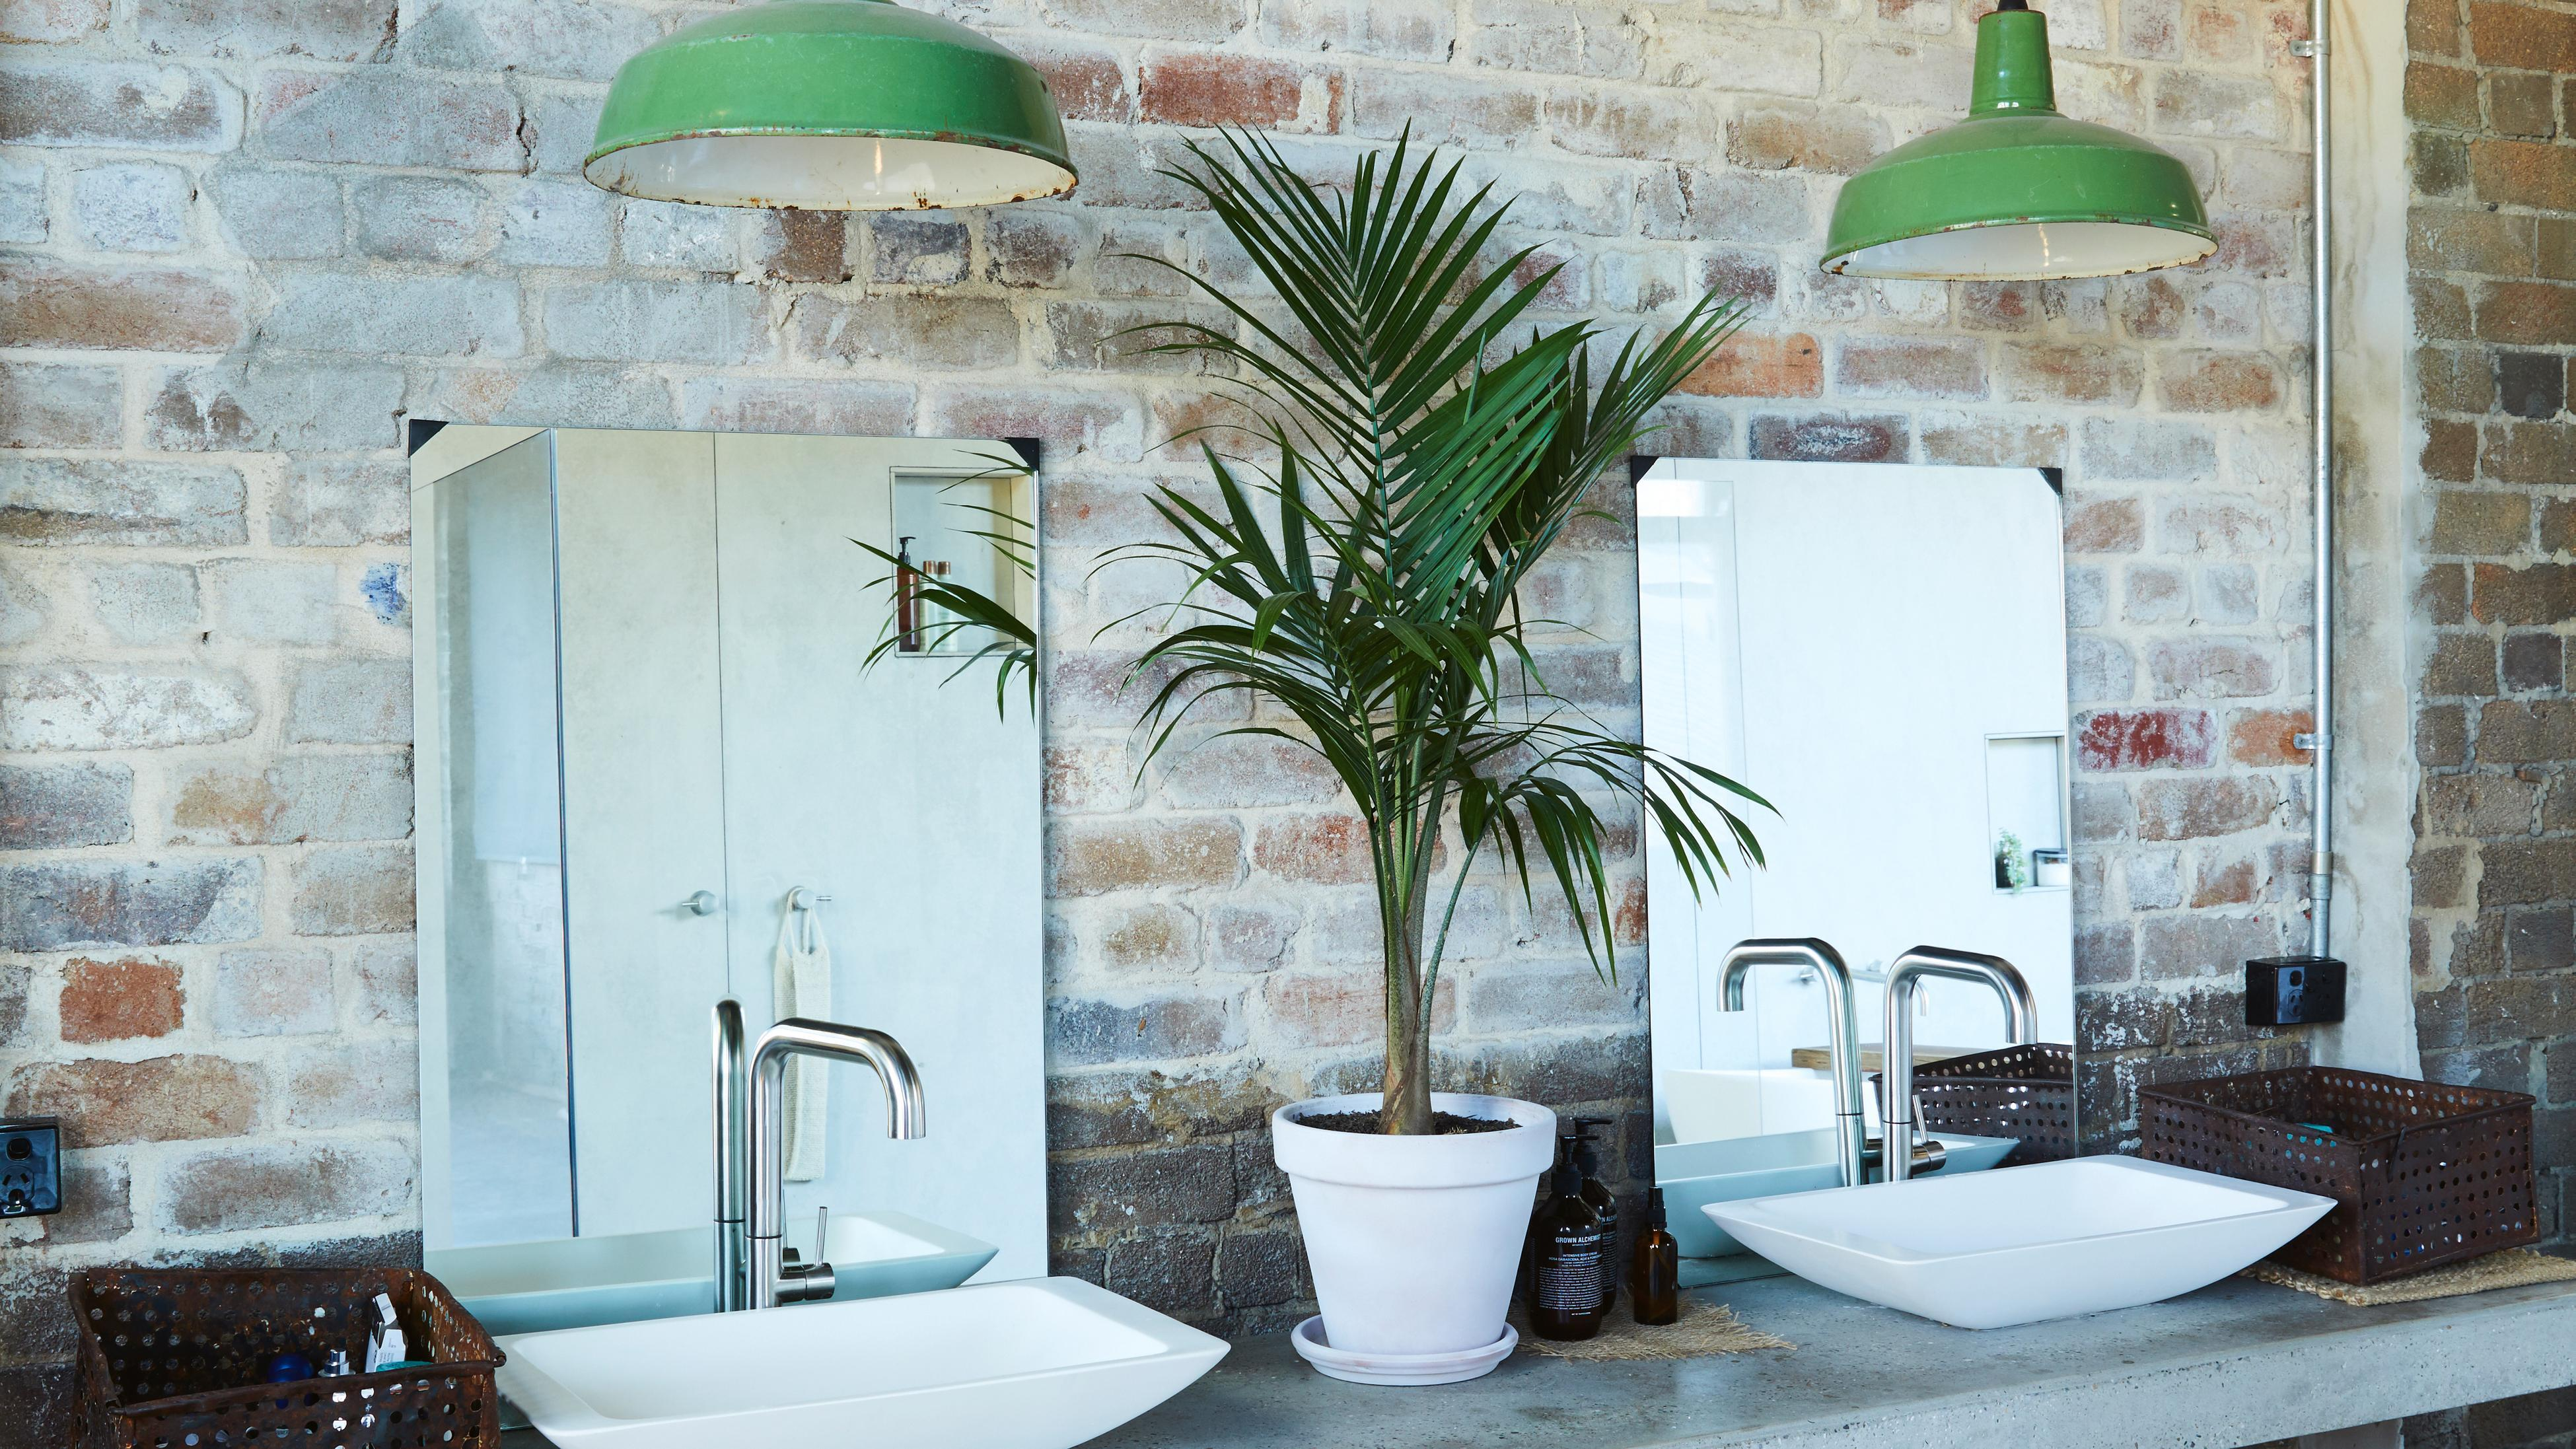 Exposed brick wall bathroom with two sinks